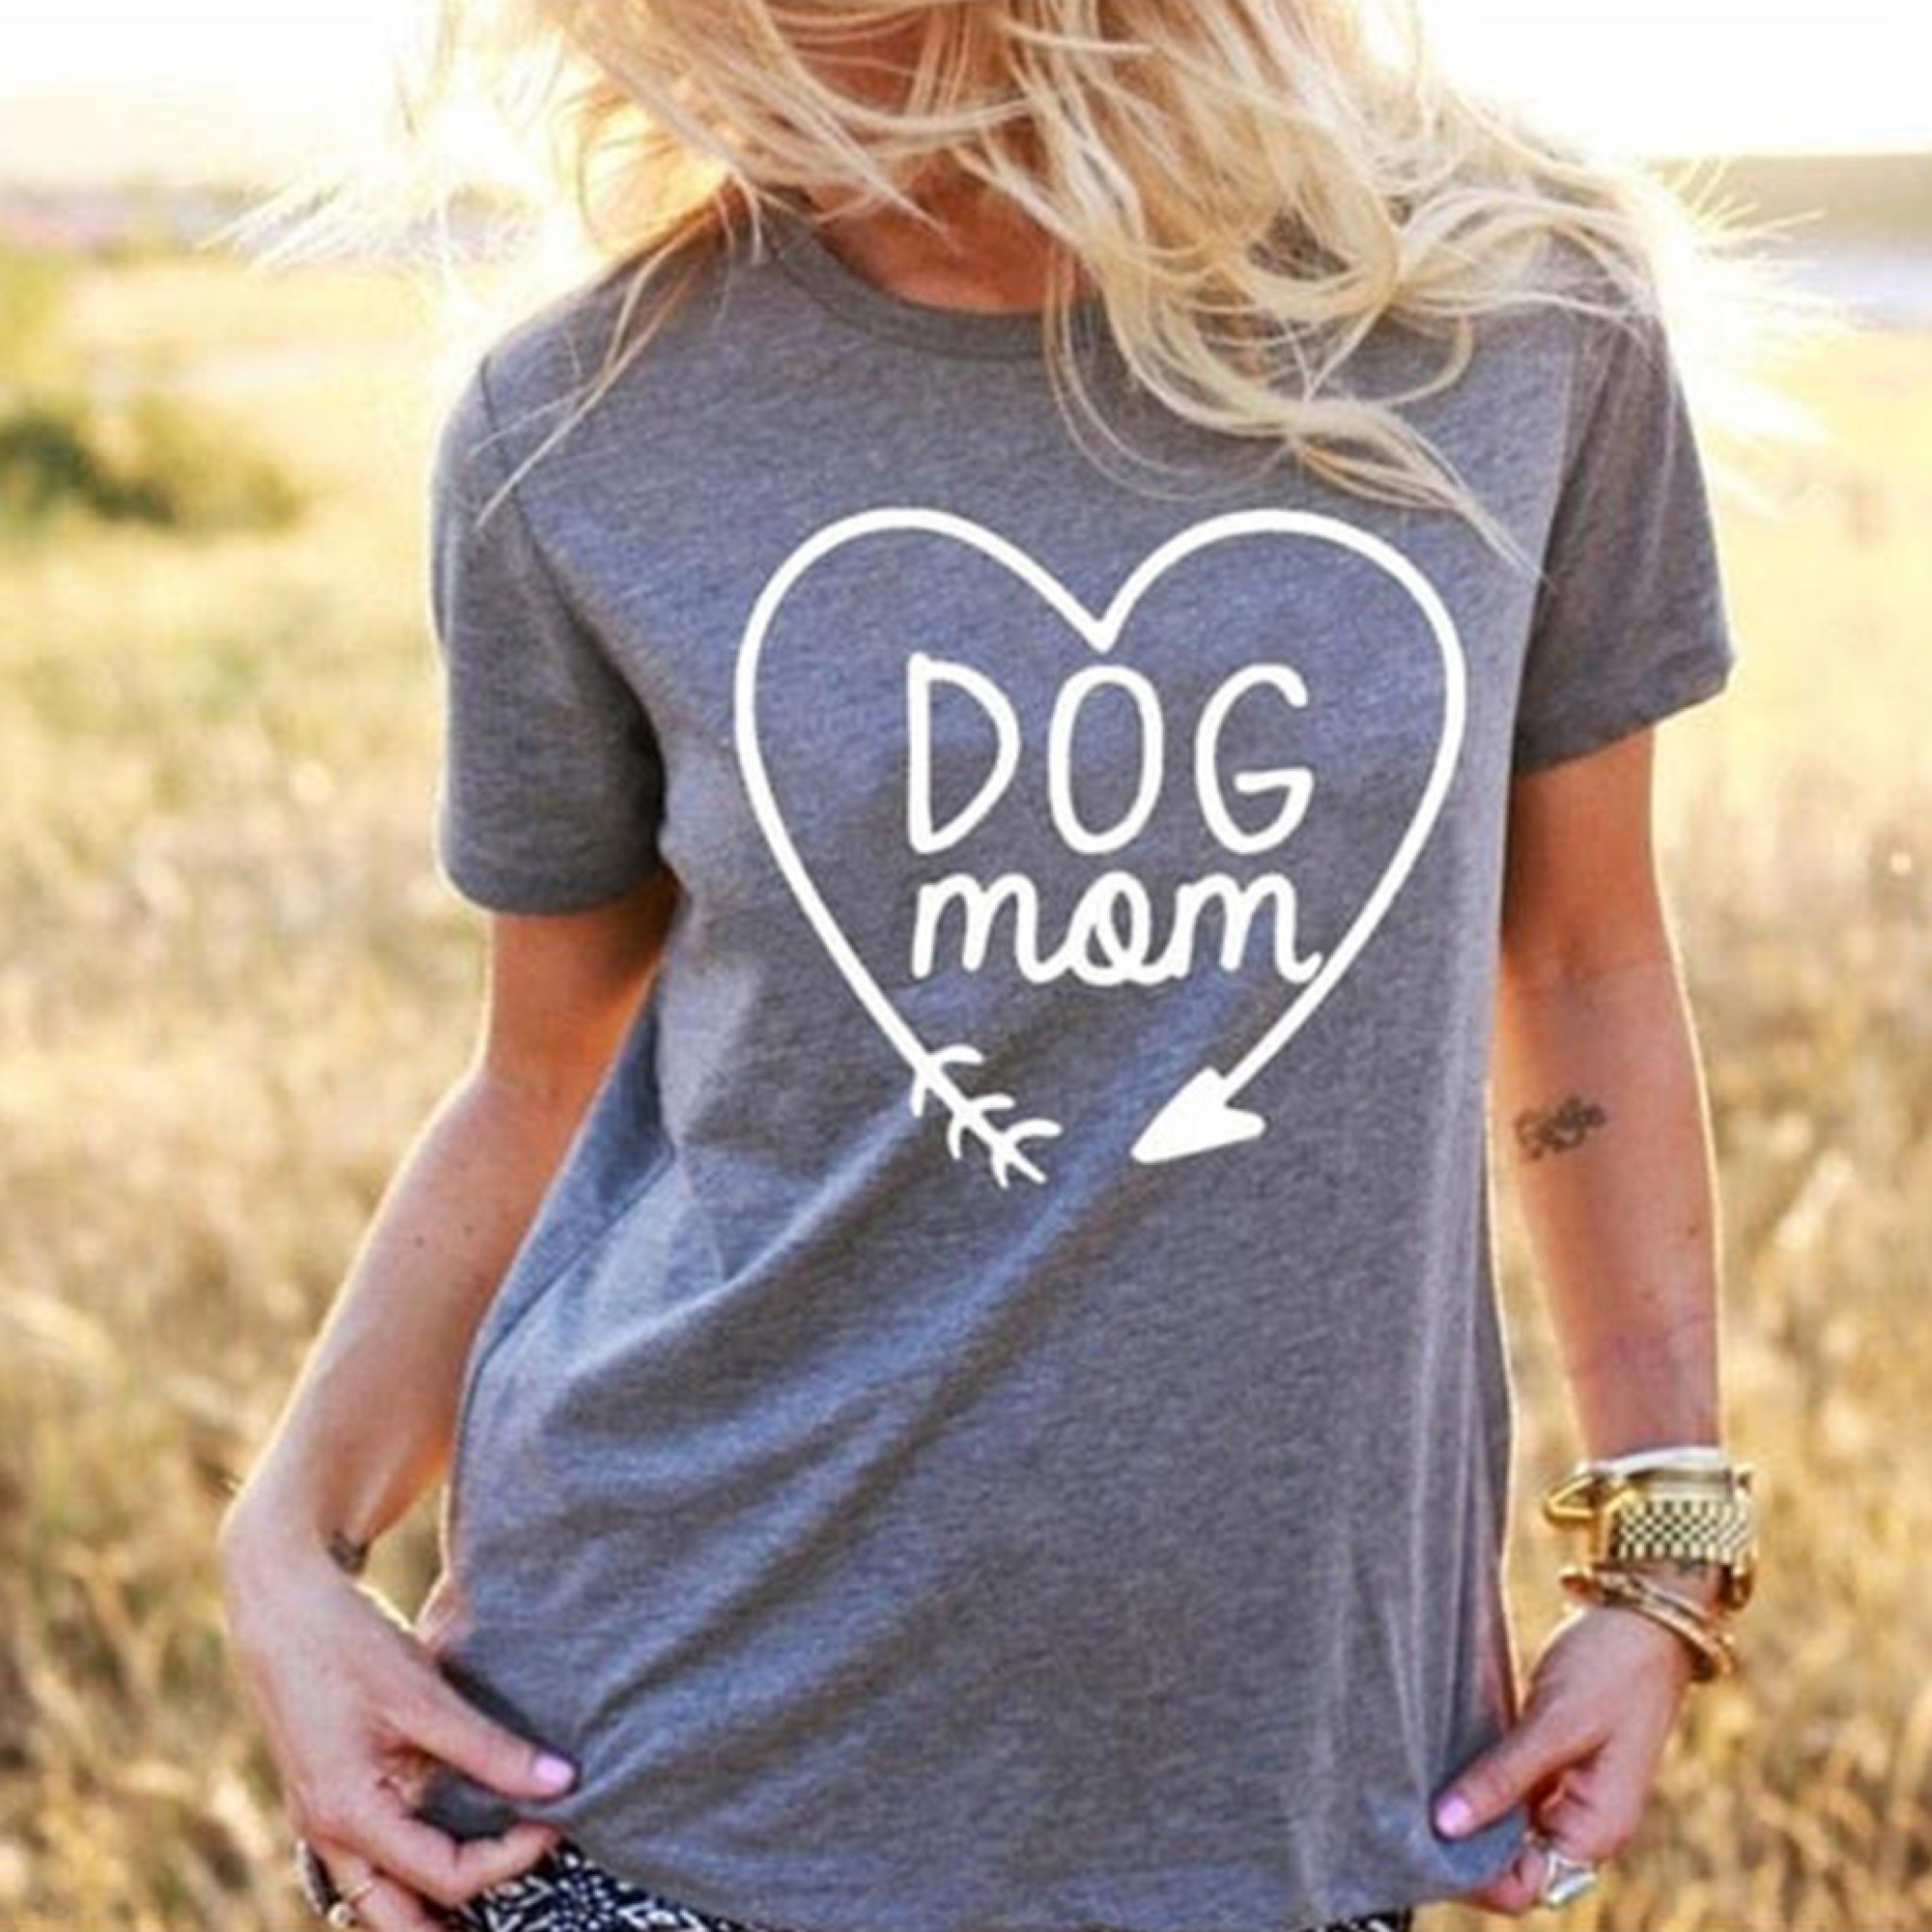 Dog Shirt Women Mom Dog Tee Clothes Rescue Animal Pet Lover Owner Gift for Girls Grey S by CTM Design (Image #1)